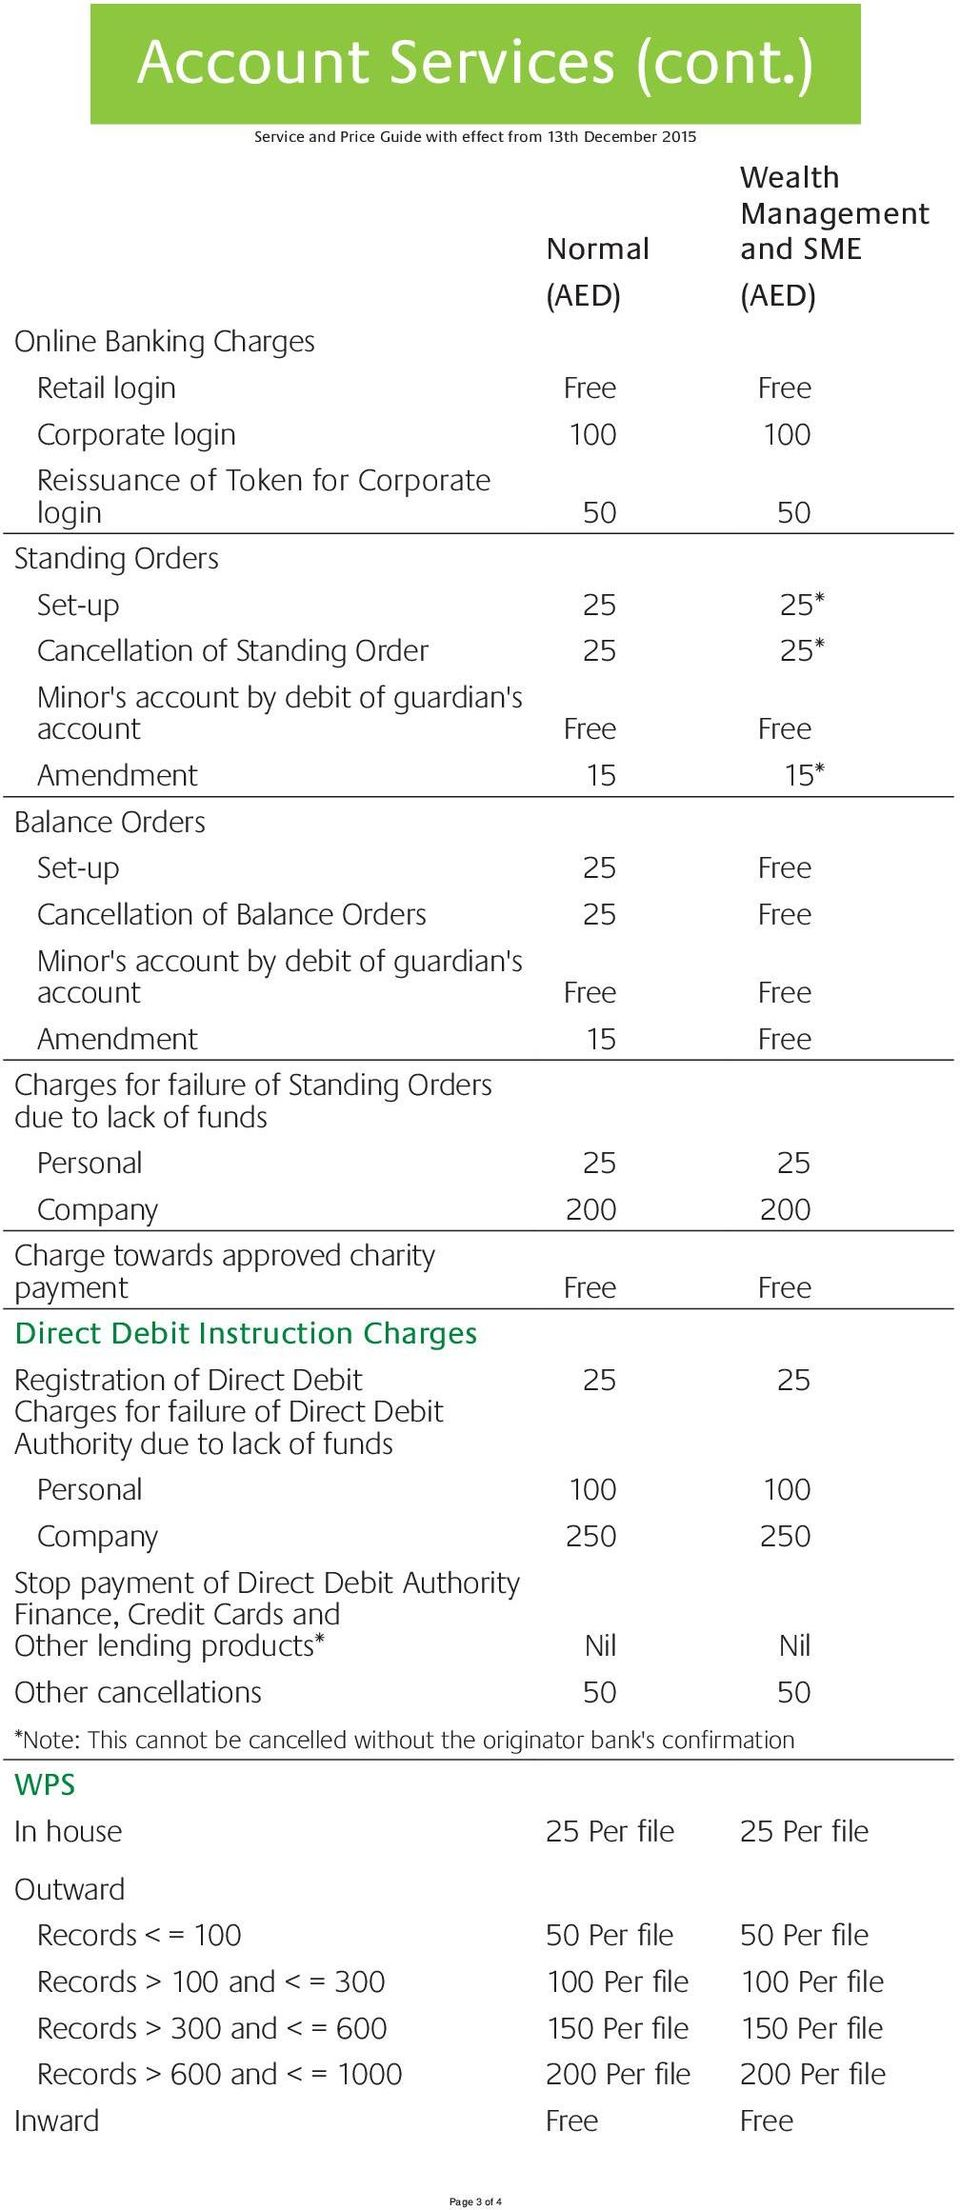 account by debit of guardian's account Free Free Amendment 15 15* Balance Orders Set-up 25 Free Cancellation of Balance Orders 25 Free Minor's account by debit of guardian's account Free Free